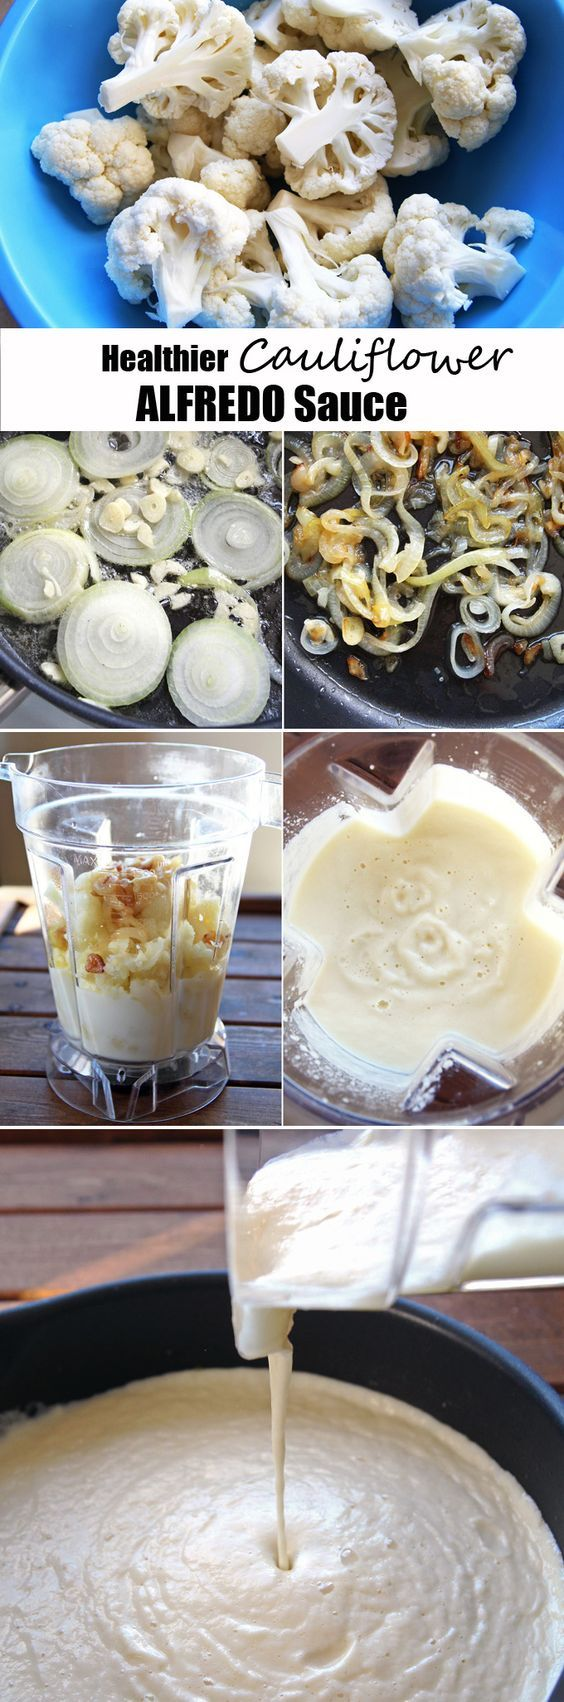 Healthier Alfredo Sauce made with Cauliflower